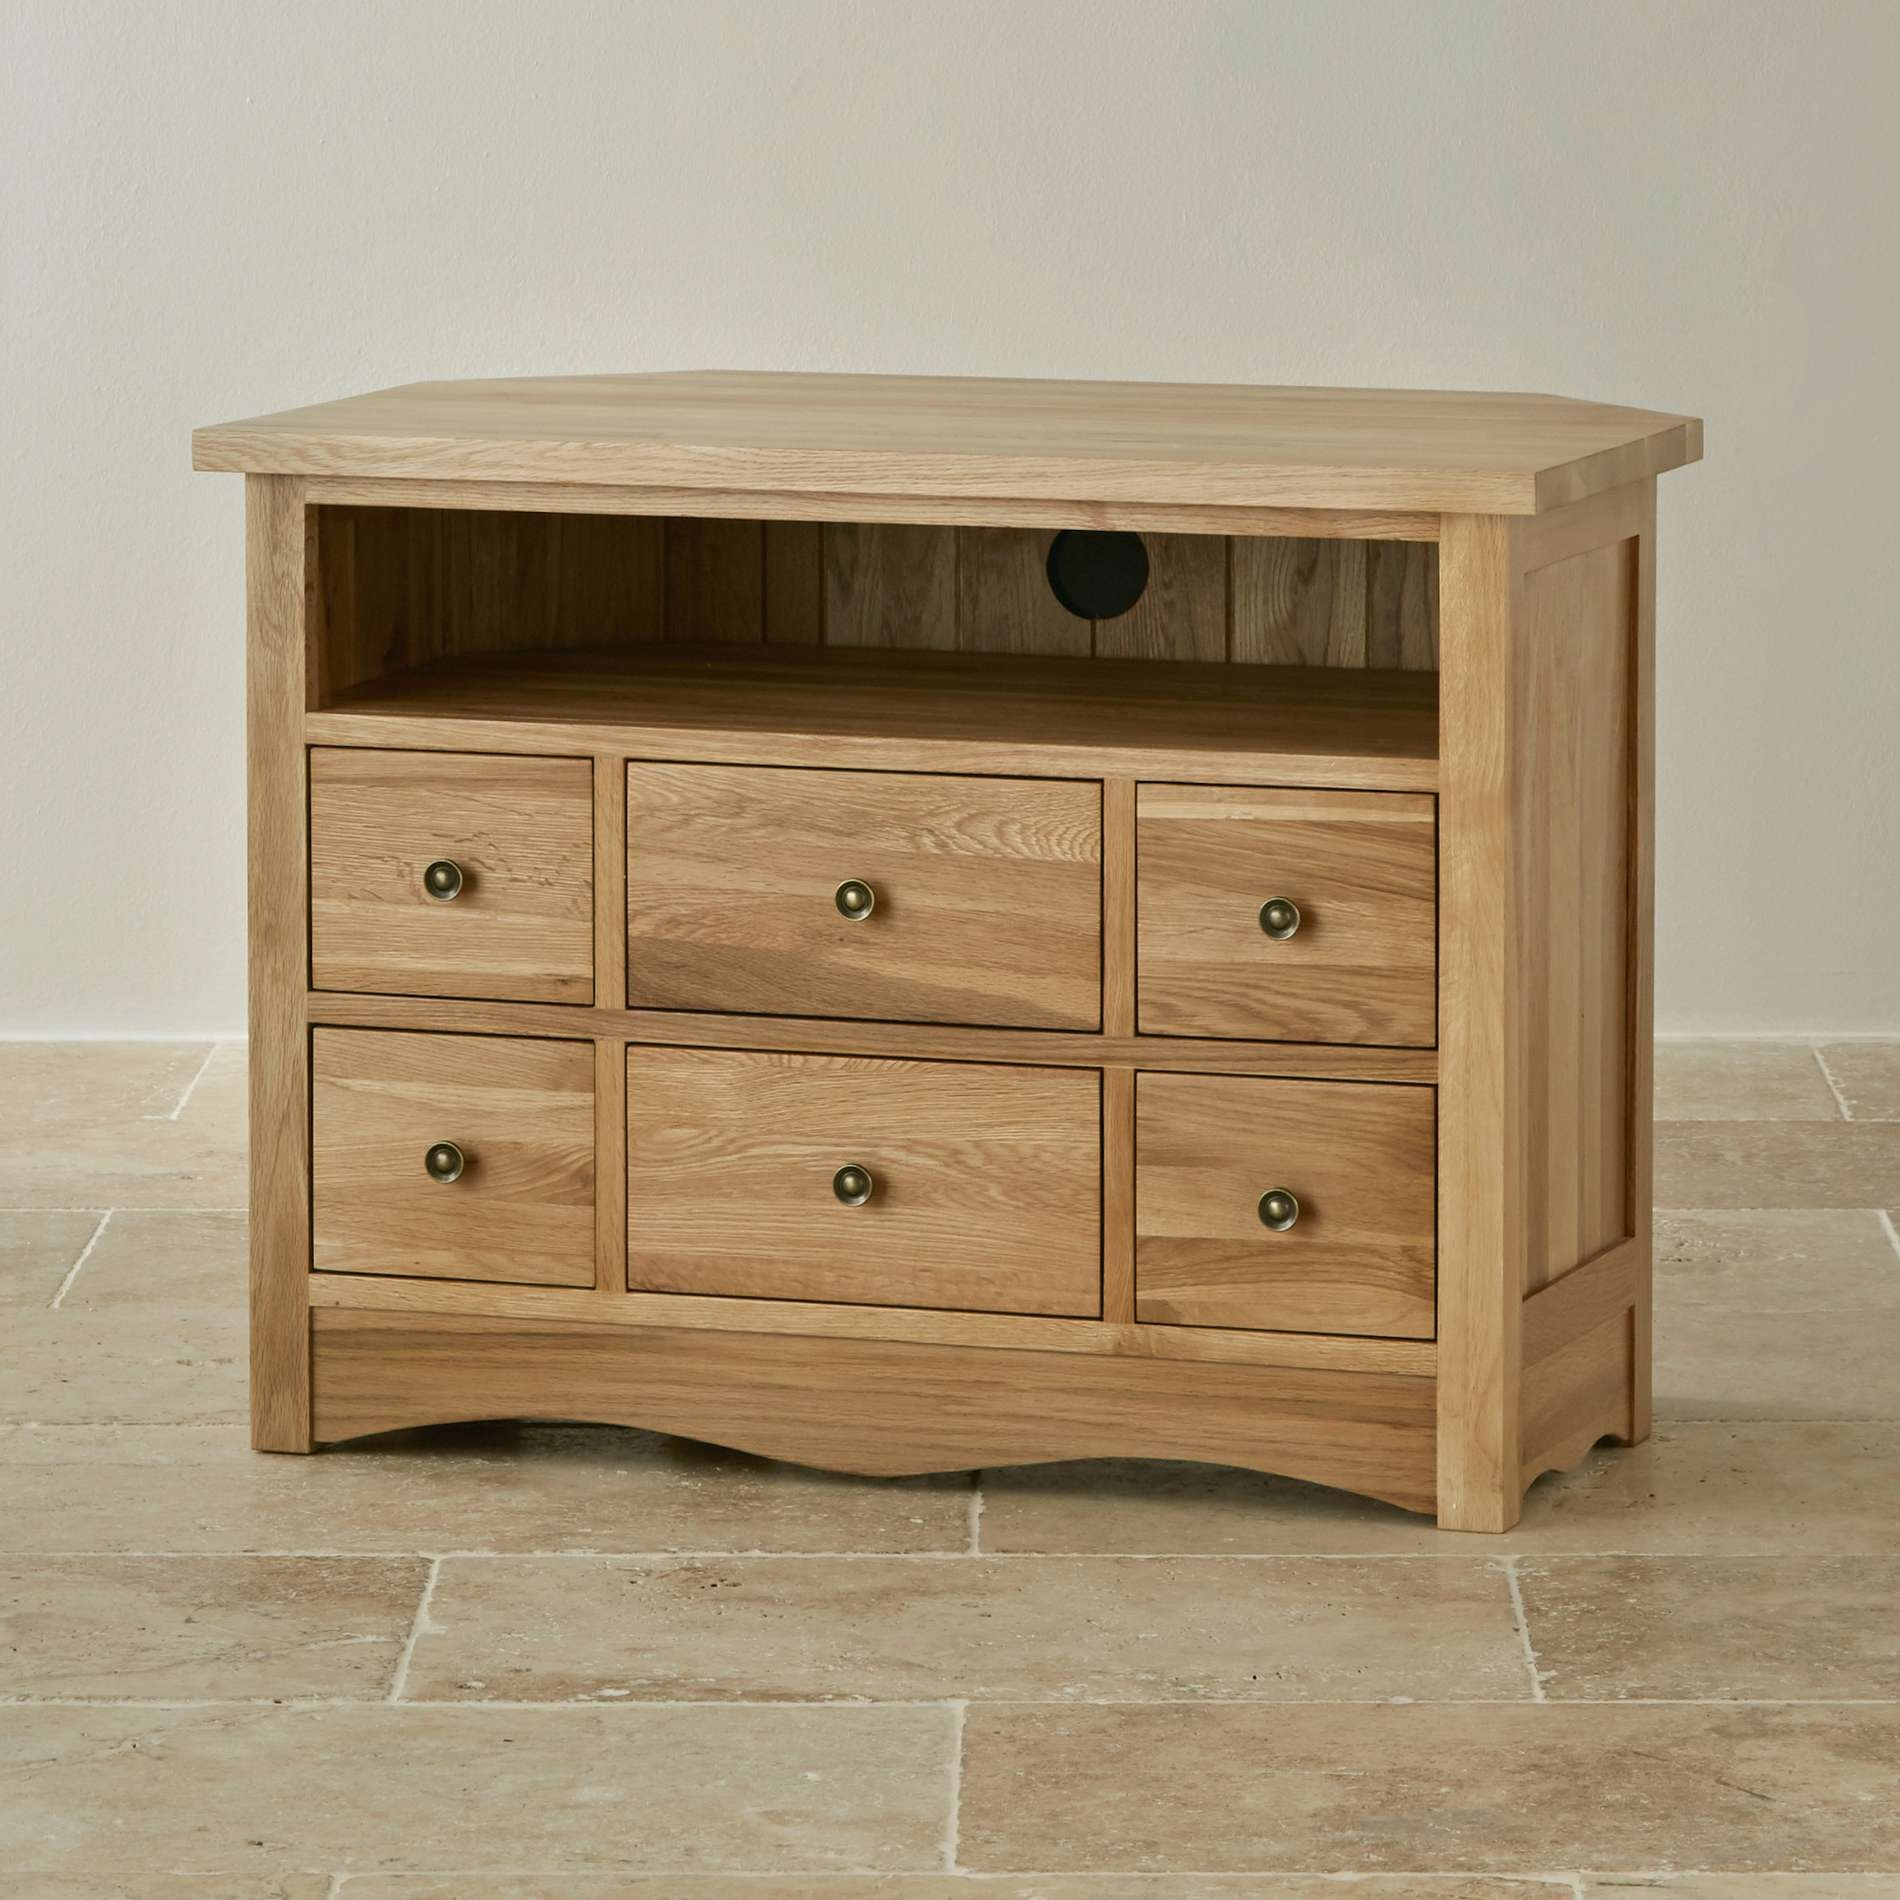 Elegant Oak Corner Tv Stand 24 On Small Home Remodel Ideas With Intended For Small Oak Corner Tv Stands (View 6 of 15)